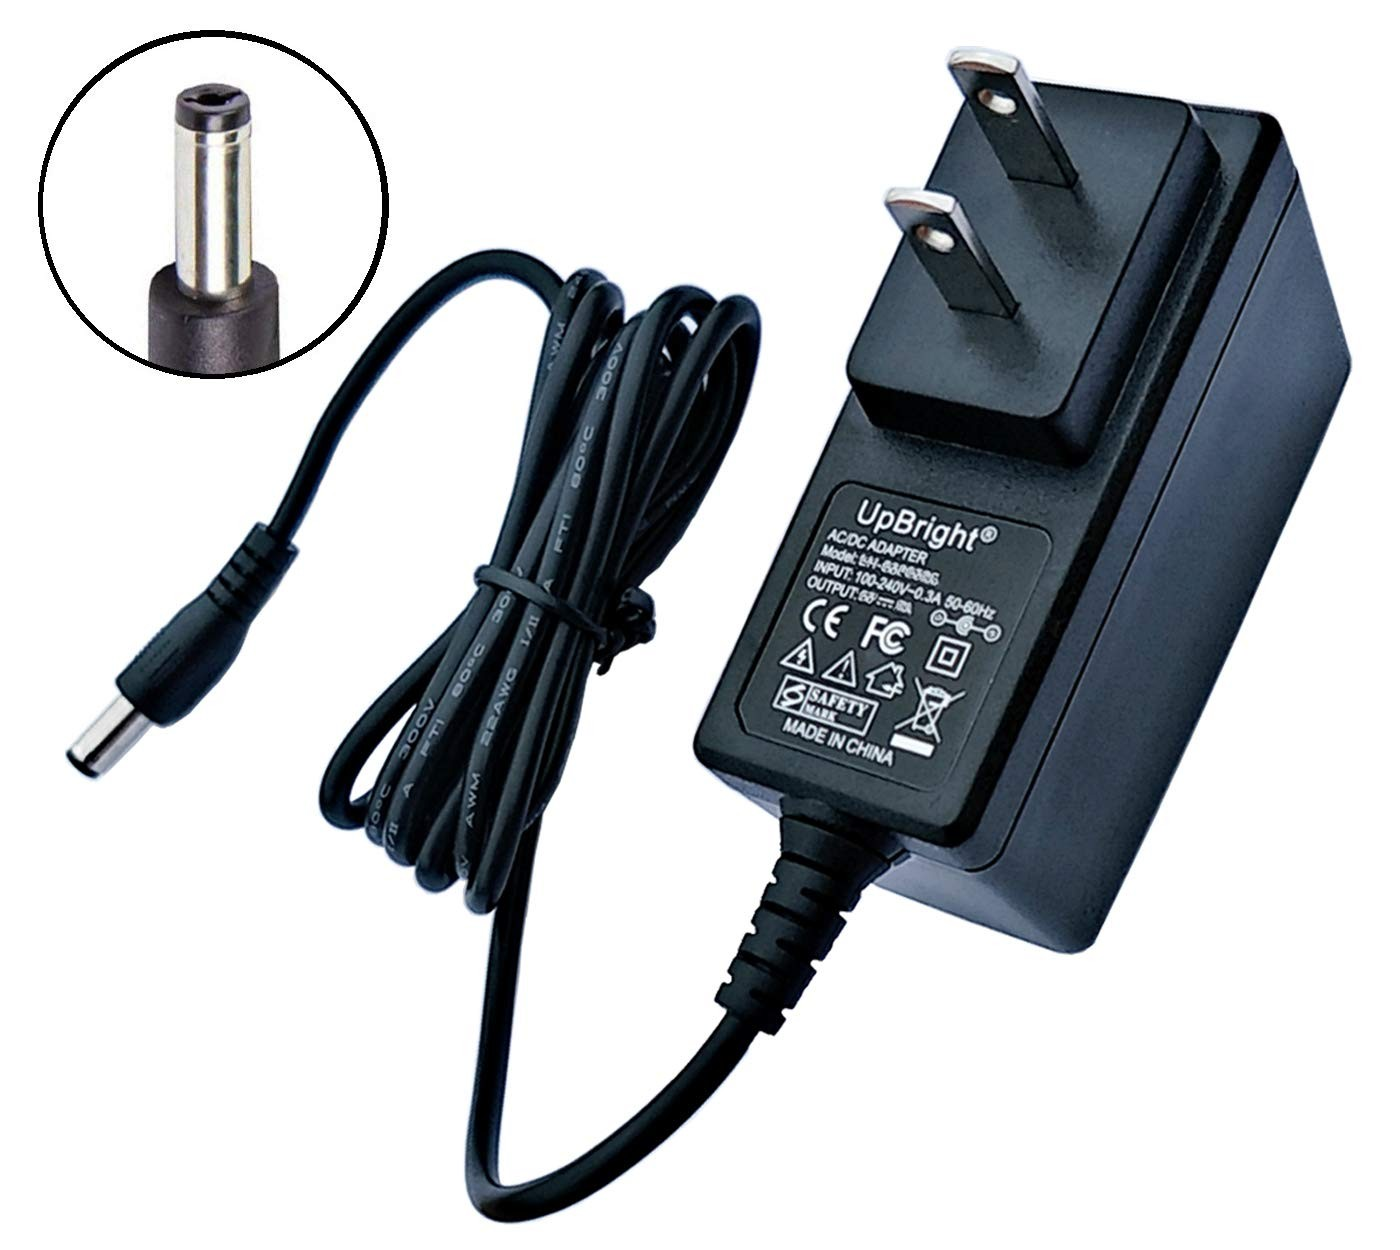 UpBright New 12 Volt Power Supply 1 Amp Standard 12V 1A DC 12W AC Adapter 12VDC 0 5A 1 0A 500mA 1000mA Power Cord Cable Battery Charger w 5 5mm OD x